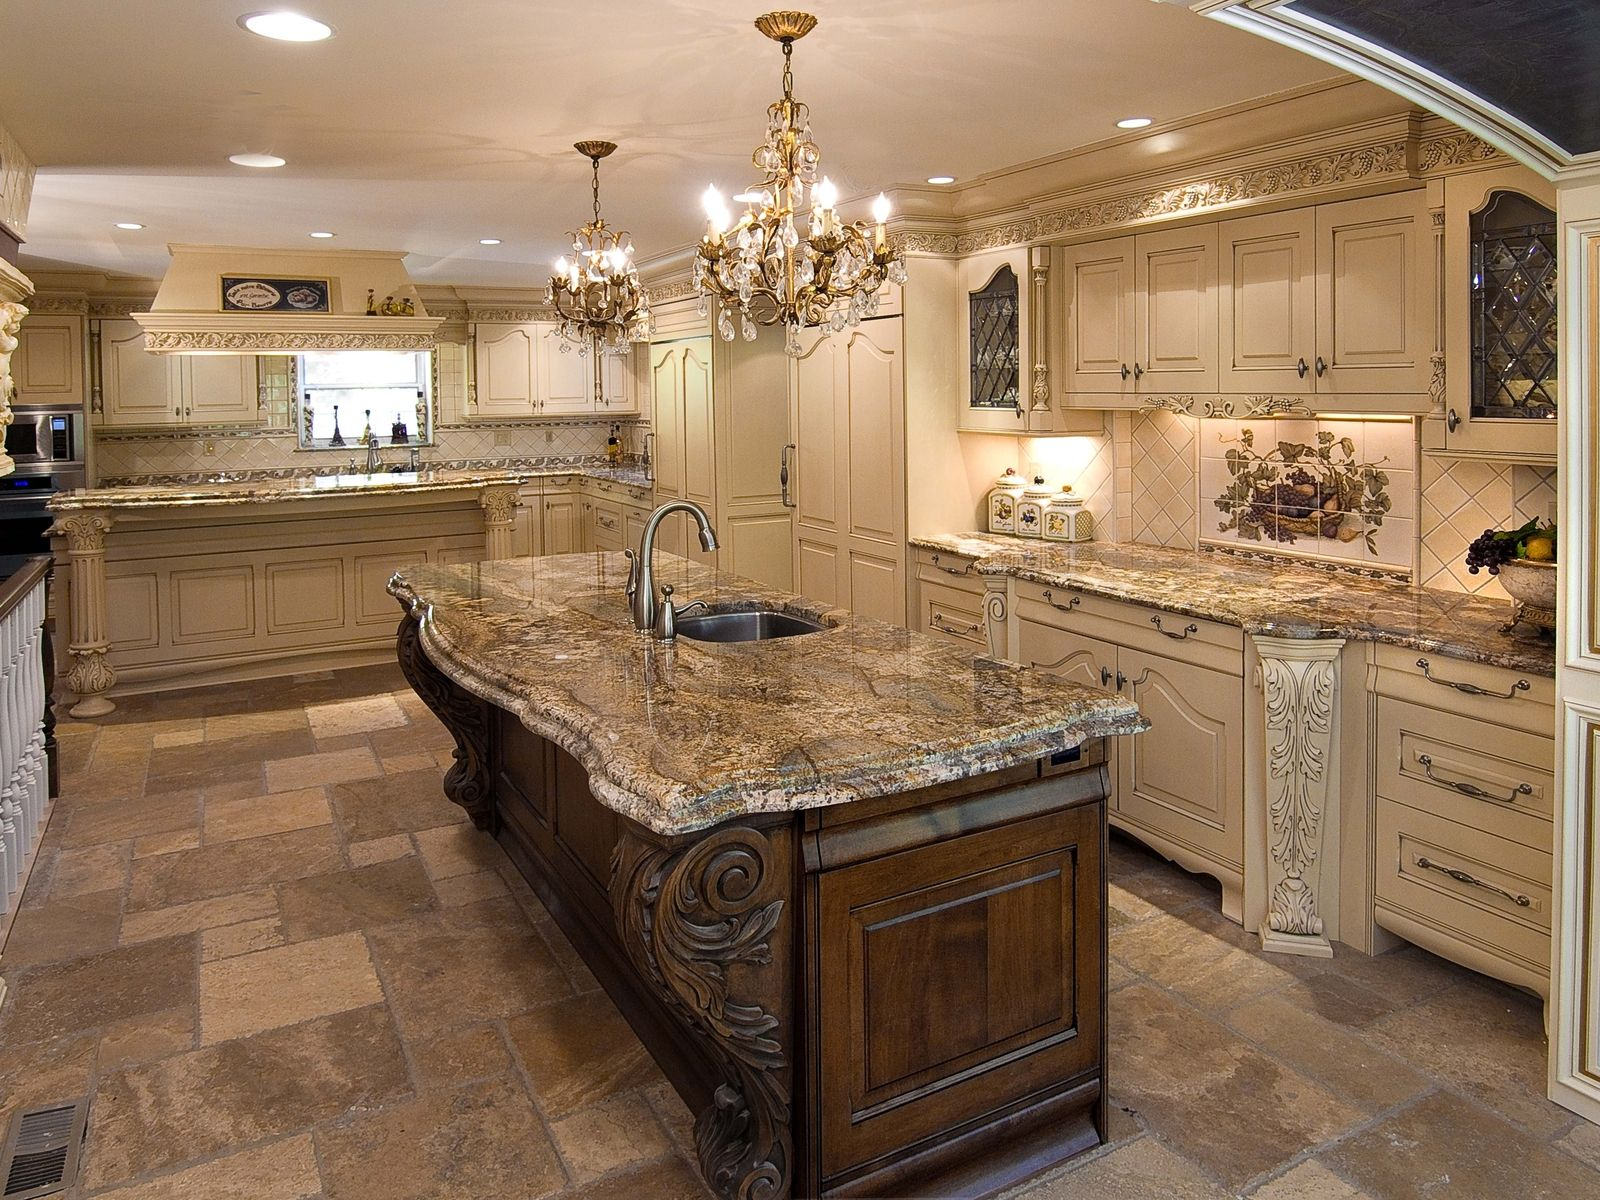 Custom Made Cabinets Ornate Kitchen Cabinets Custom Made Ornate Kitchen By